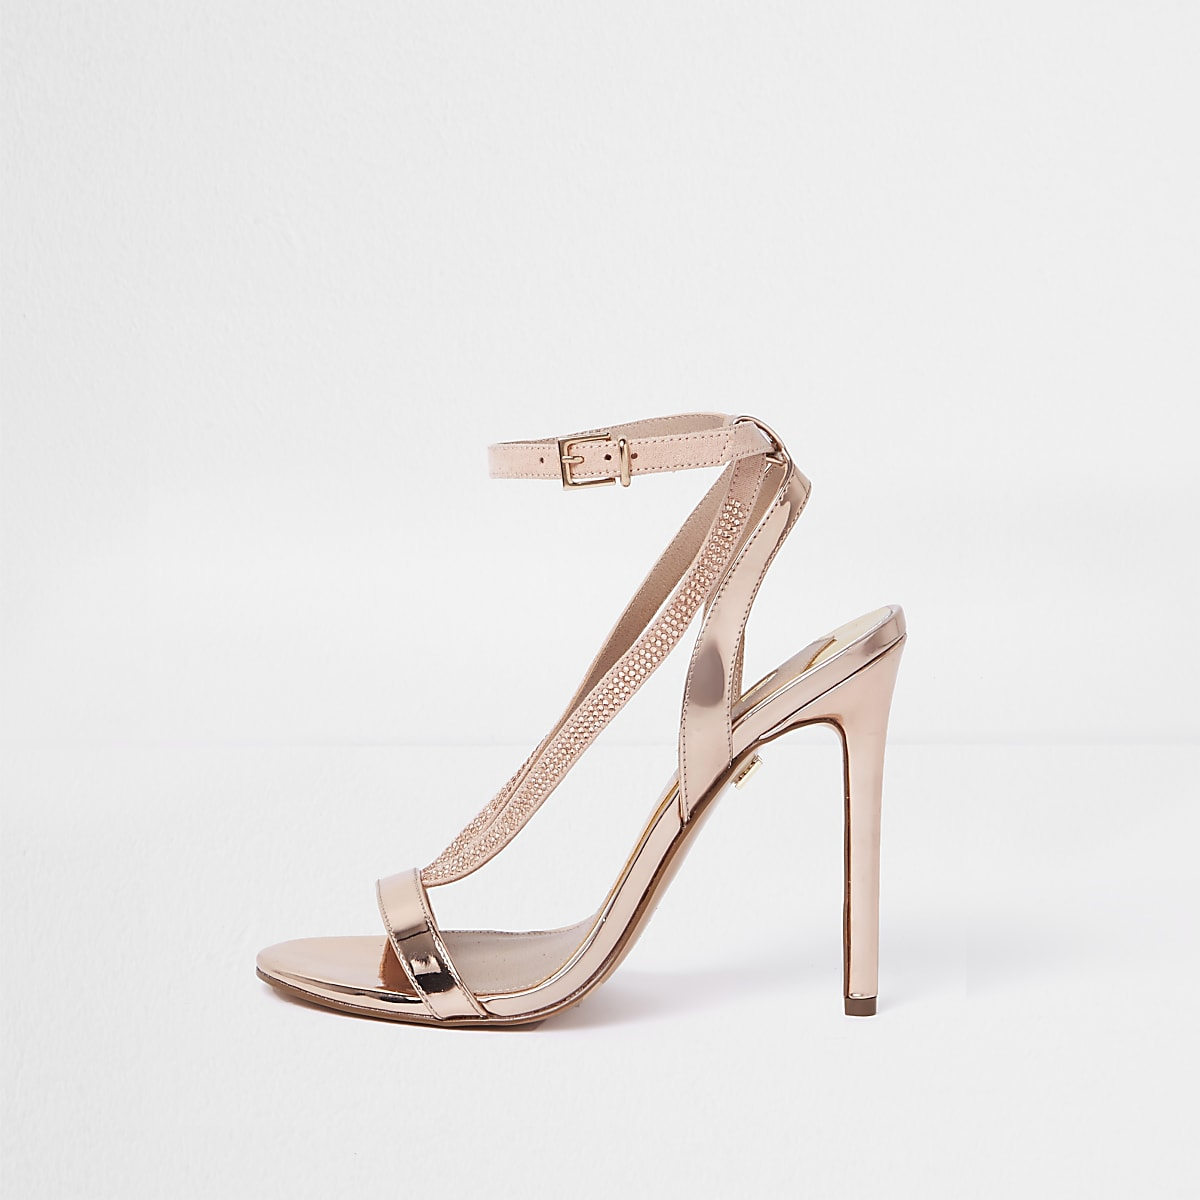 0d3eab5d9be3f Gold metallic diamante barely there sandals Gold metallic diamante barely  there sandals ...